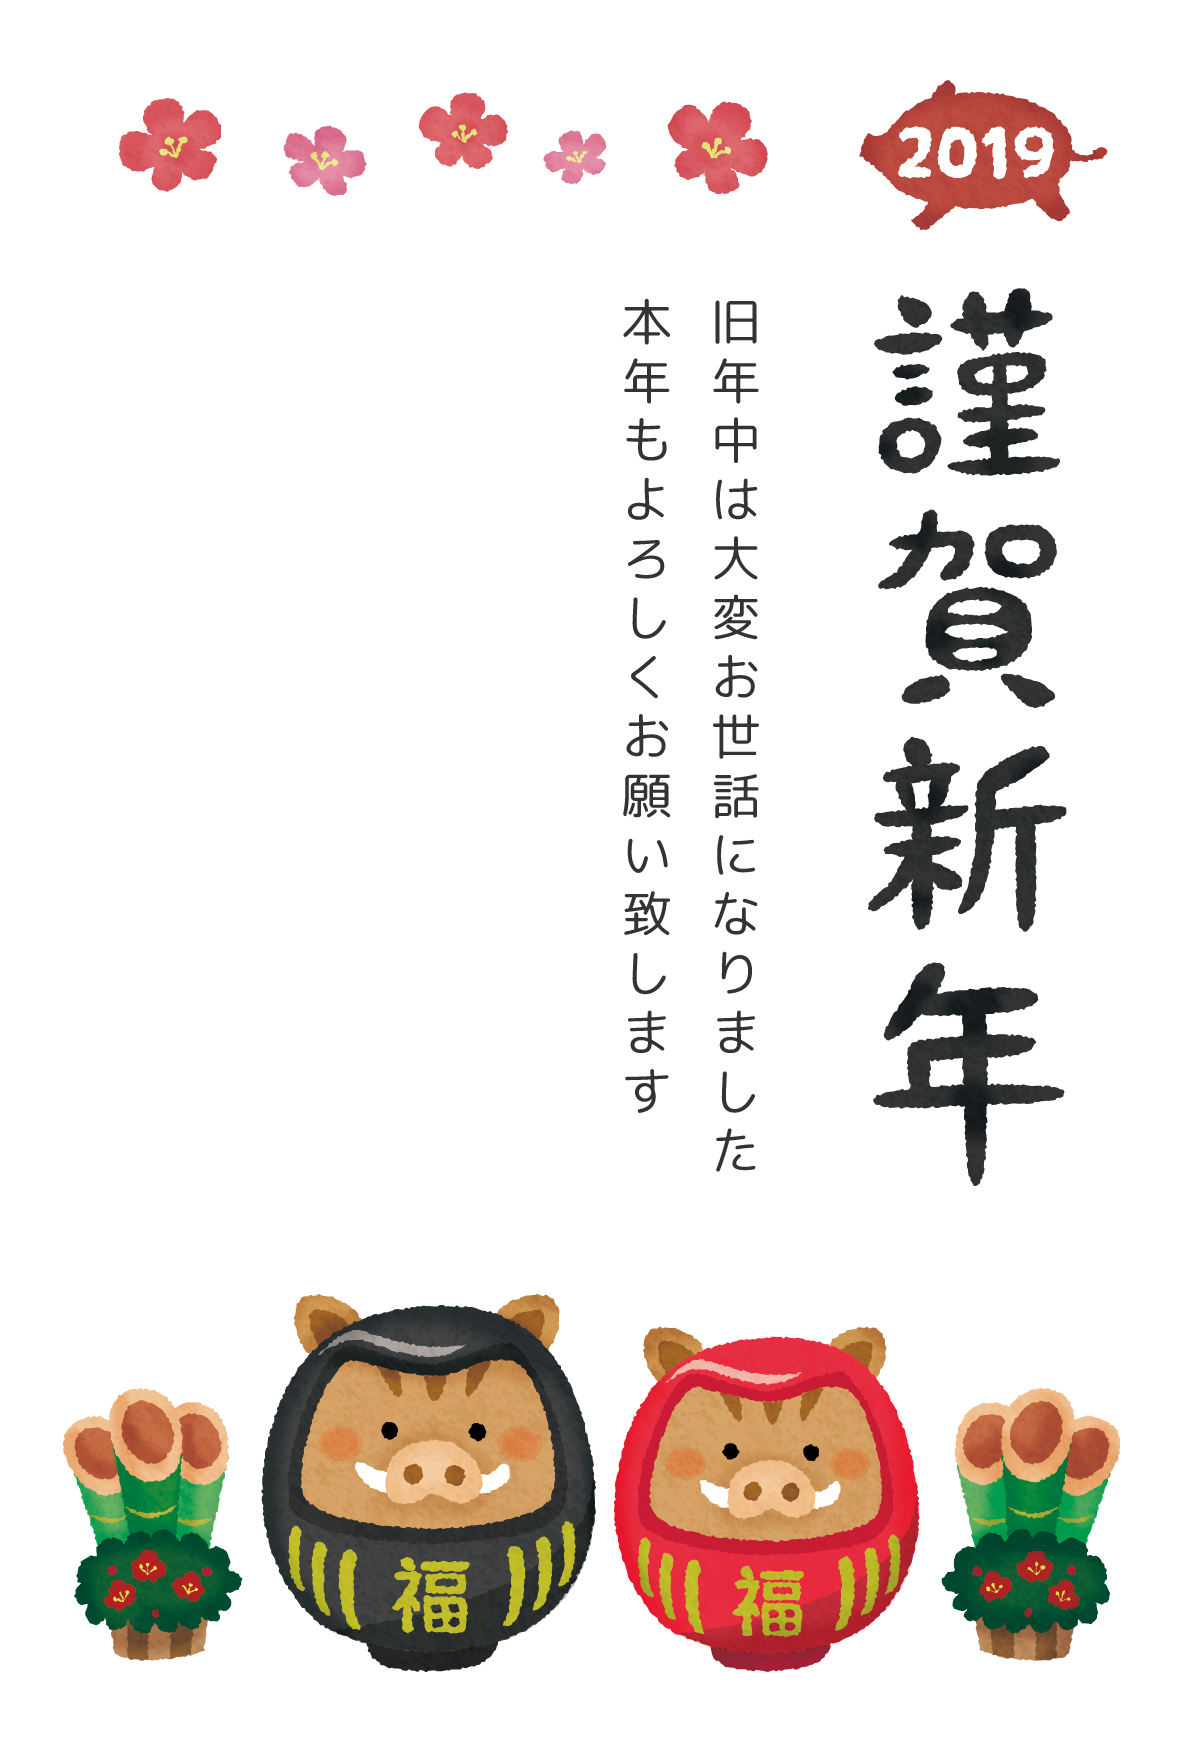 Kingashinnen Card Free Template (Boar daruma couple)